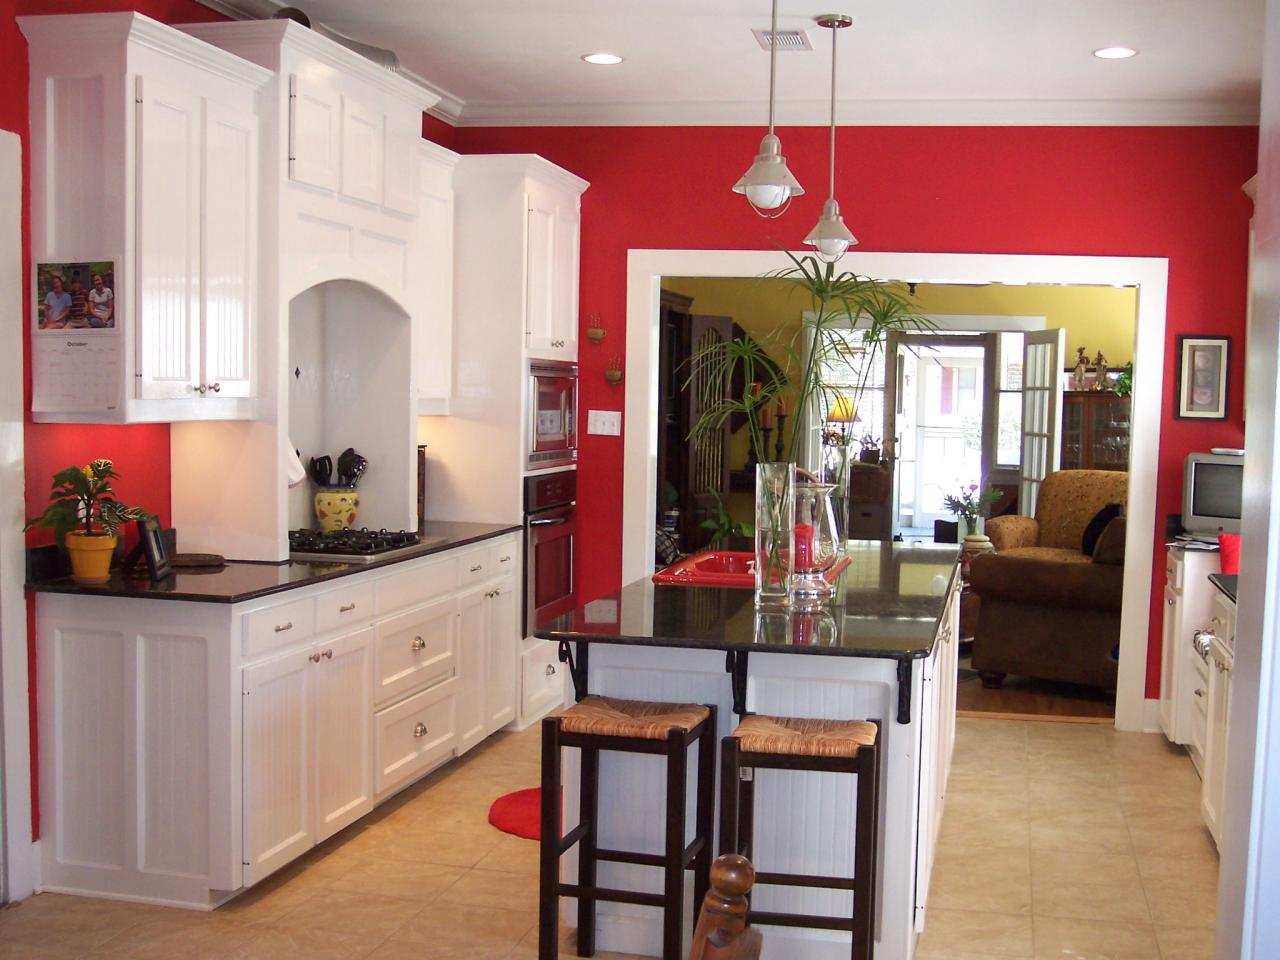 kitchen color ideas what colors to paint a kitchen RQYGGFO